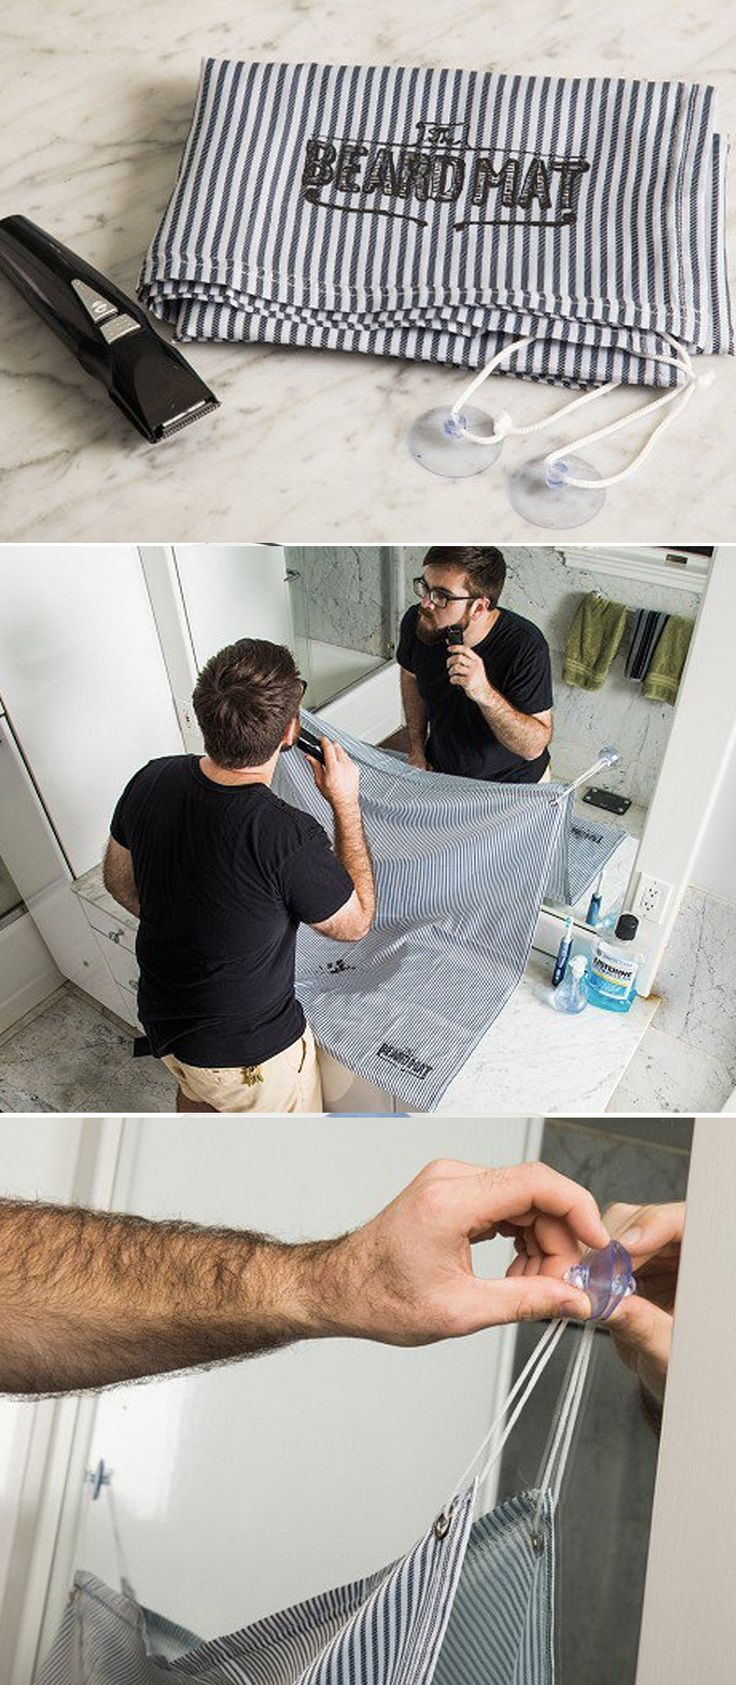 Keep your bathroom clean when you trim your beard, moustache, or hair.